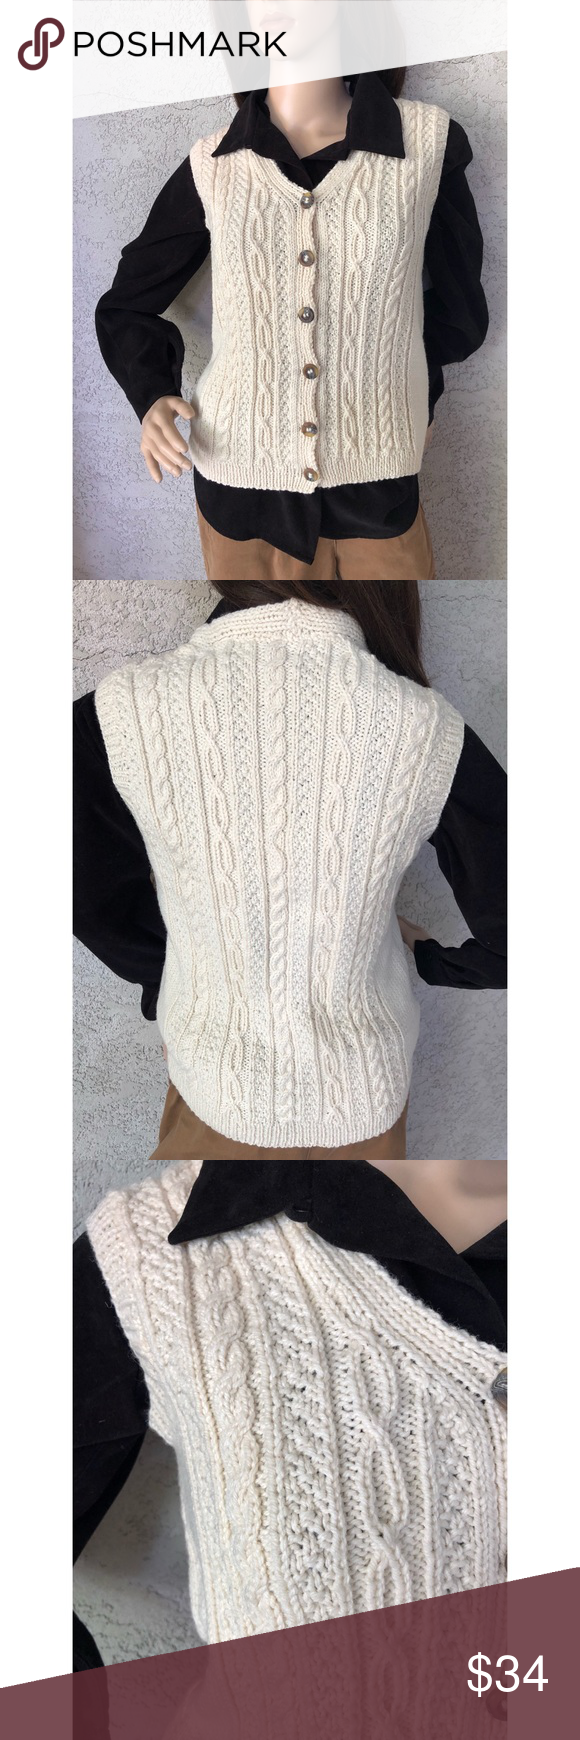 Vintage Cable Knit Cream Colored Sweater Vest This Hand Knitted Sweater Vest Is A Beauty Qualit In 2020 Hand Knitted Sweaters Cream Colored Sweater Knitting Designs